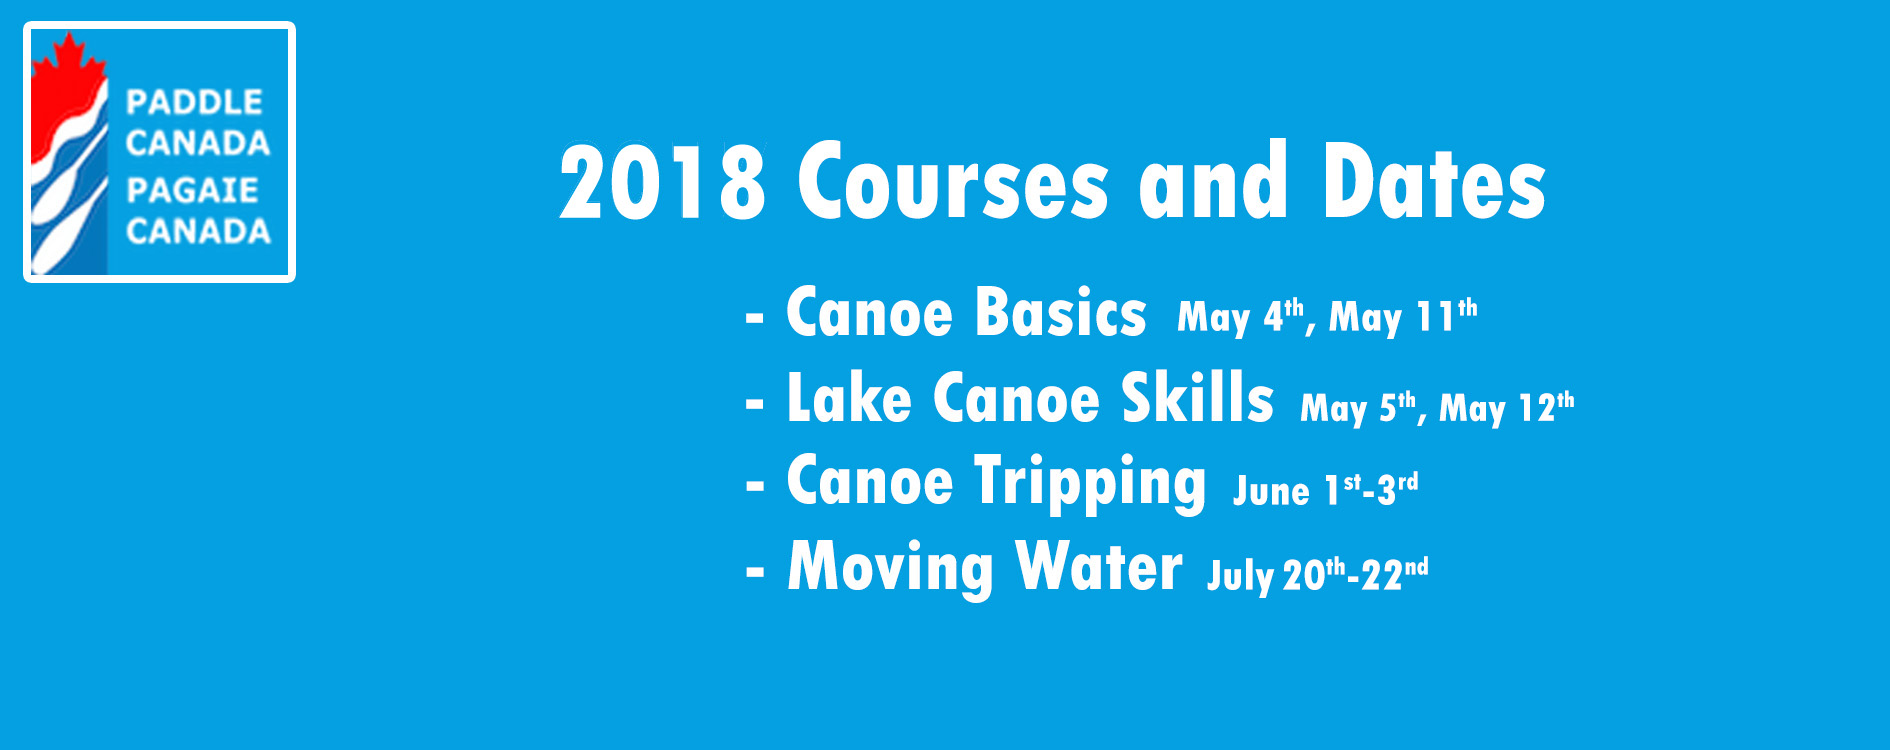 Paddle Canada Courses 2019